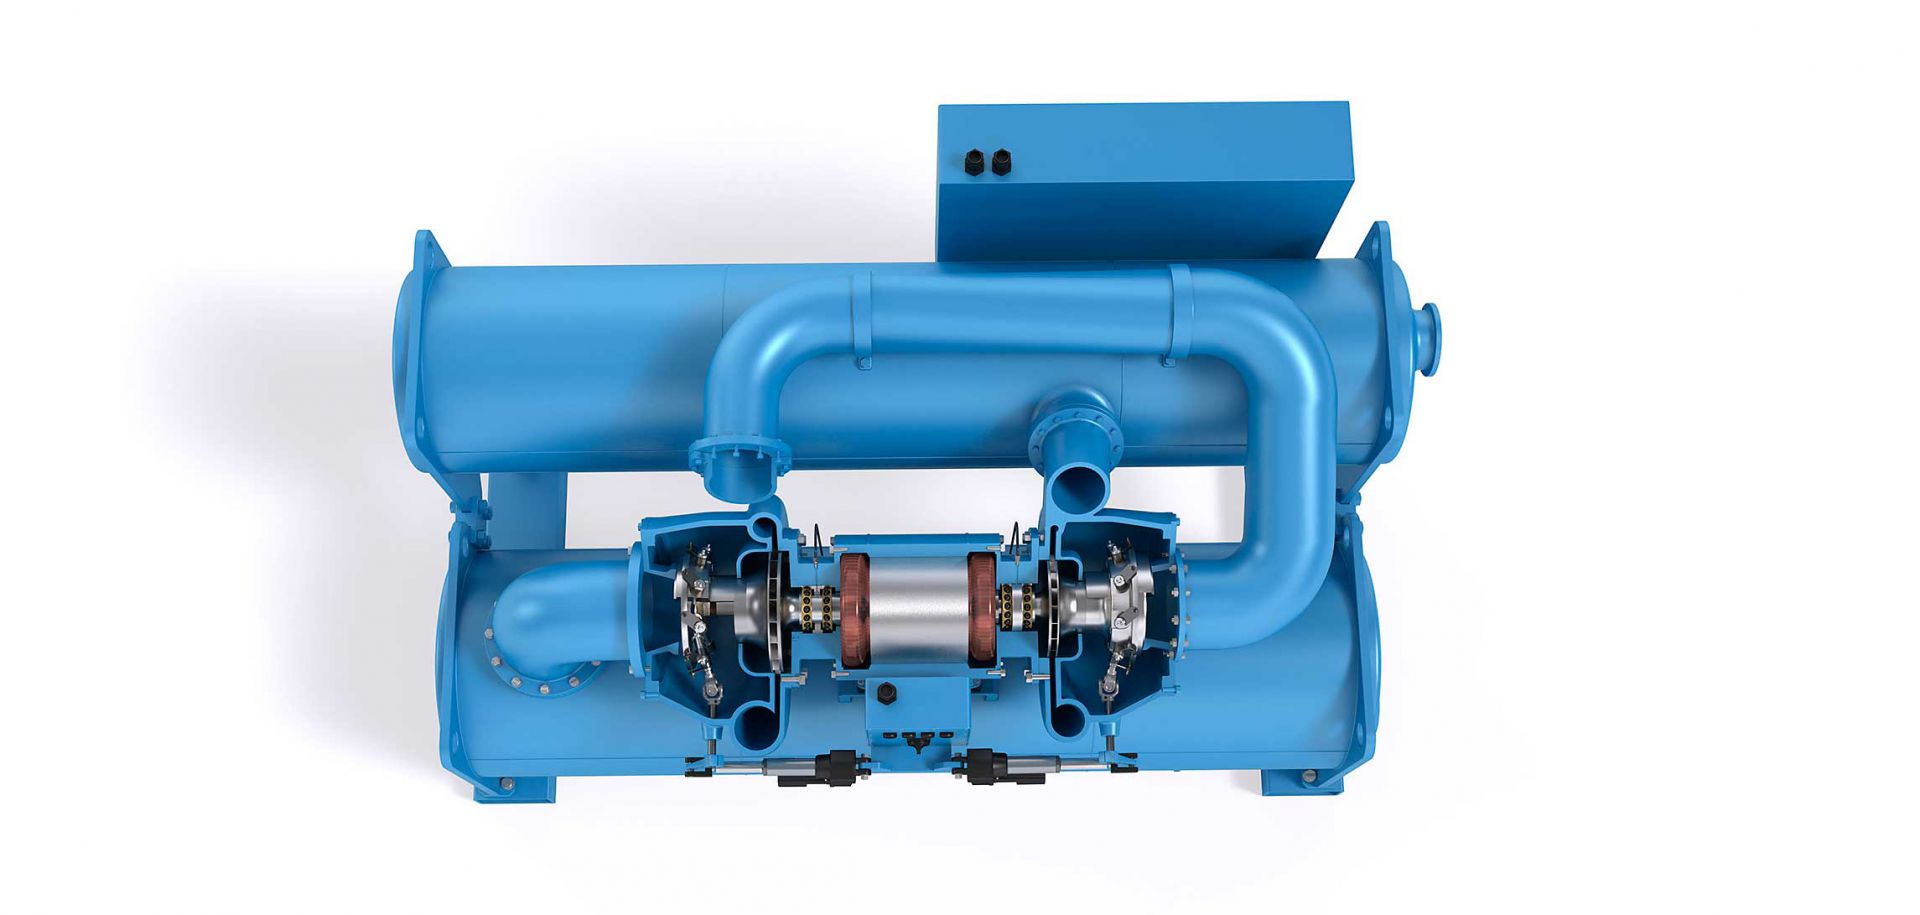 Pure refrigerant lubrication technology in oil-free centrifugal compressors